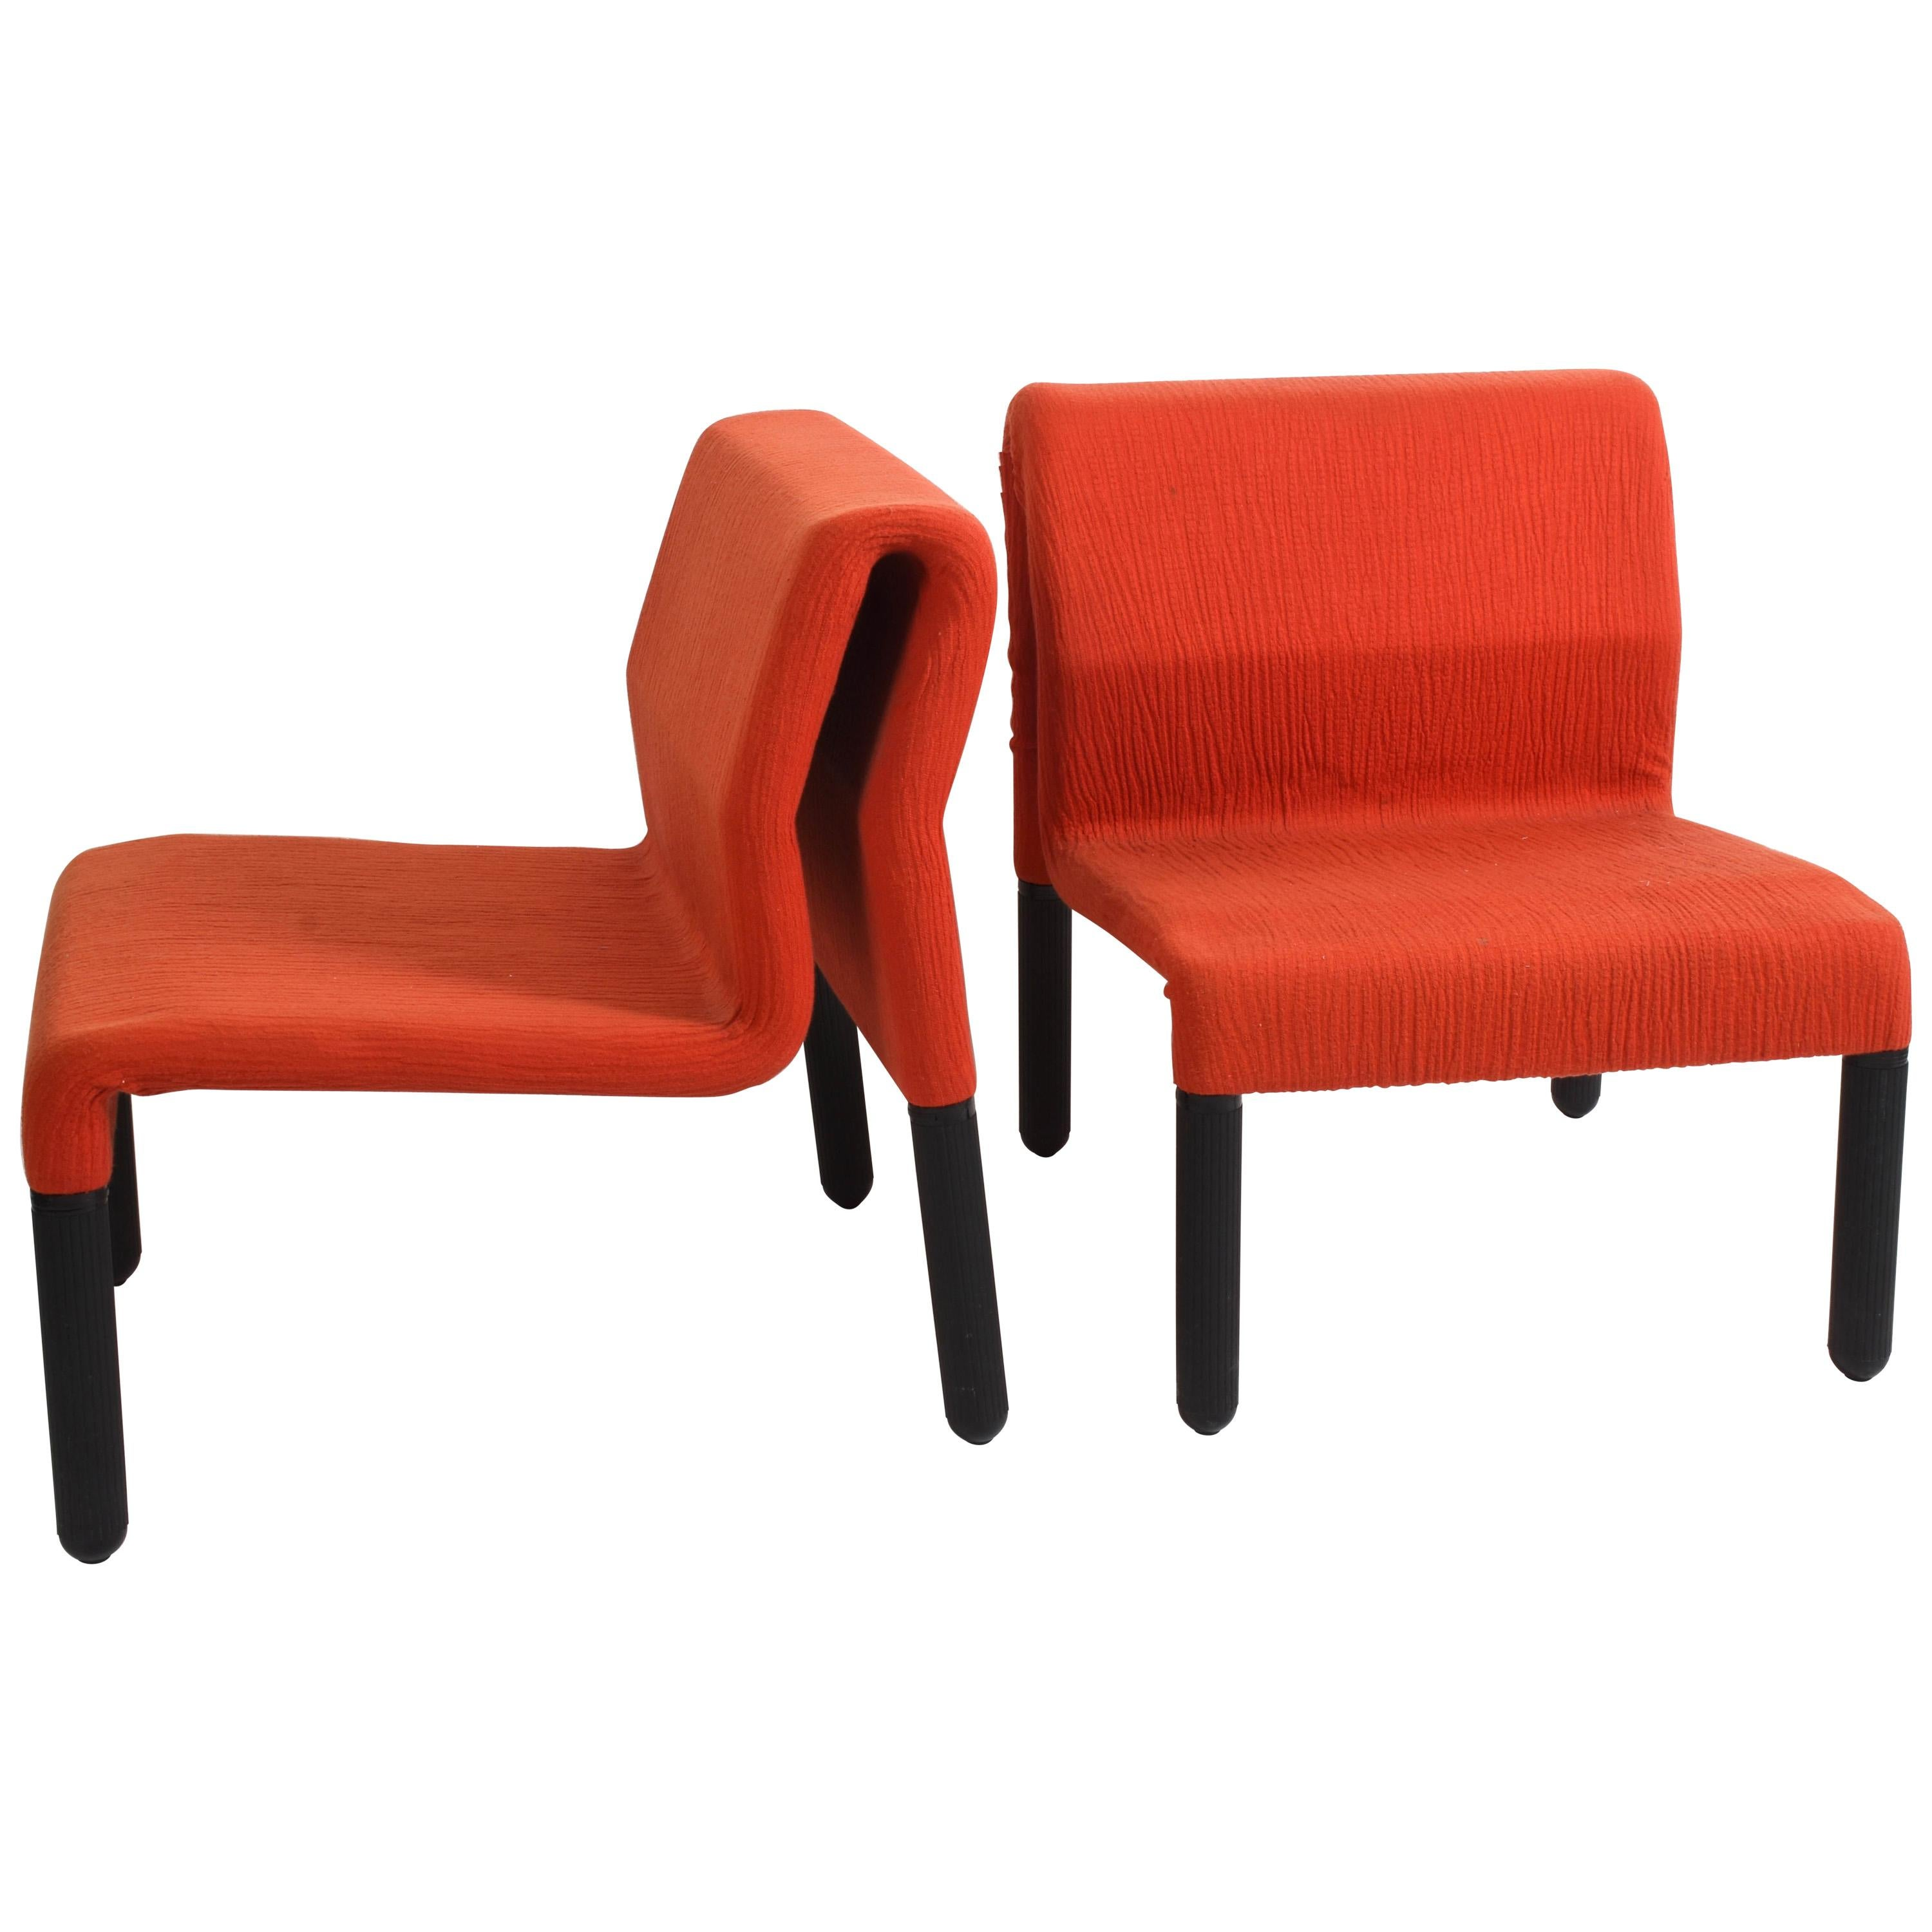 Pair of Midcentury Red Fabric and Black Plastic Italian Armchairs, 1980s